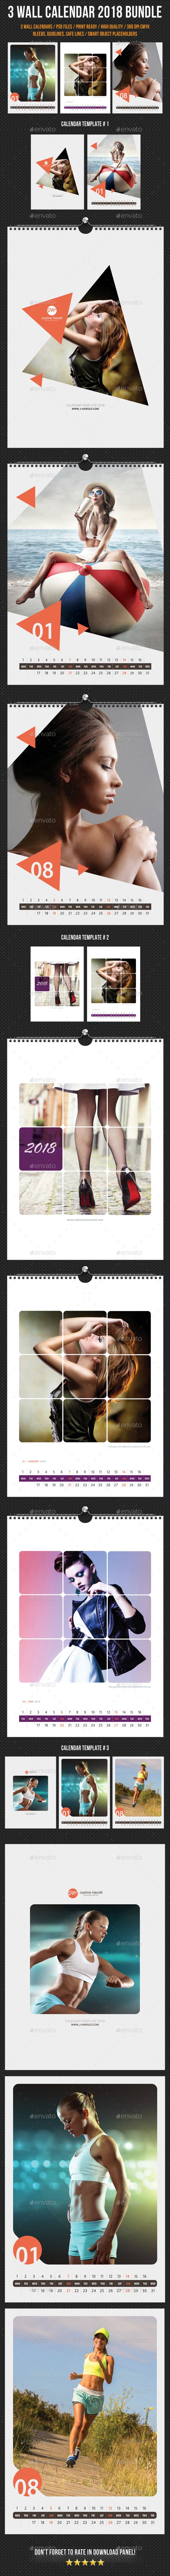 3 Creative Wall Calendar 2018 Bundle 5 — Photoshop PSD #stationery #year 2018 • Download ➝ https://graphicriver.net/item/3-creative-wall-calendar-2018-bundle-5/20482082?ref=pxcr